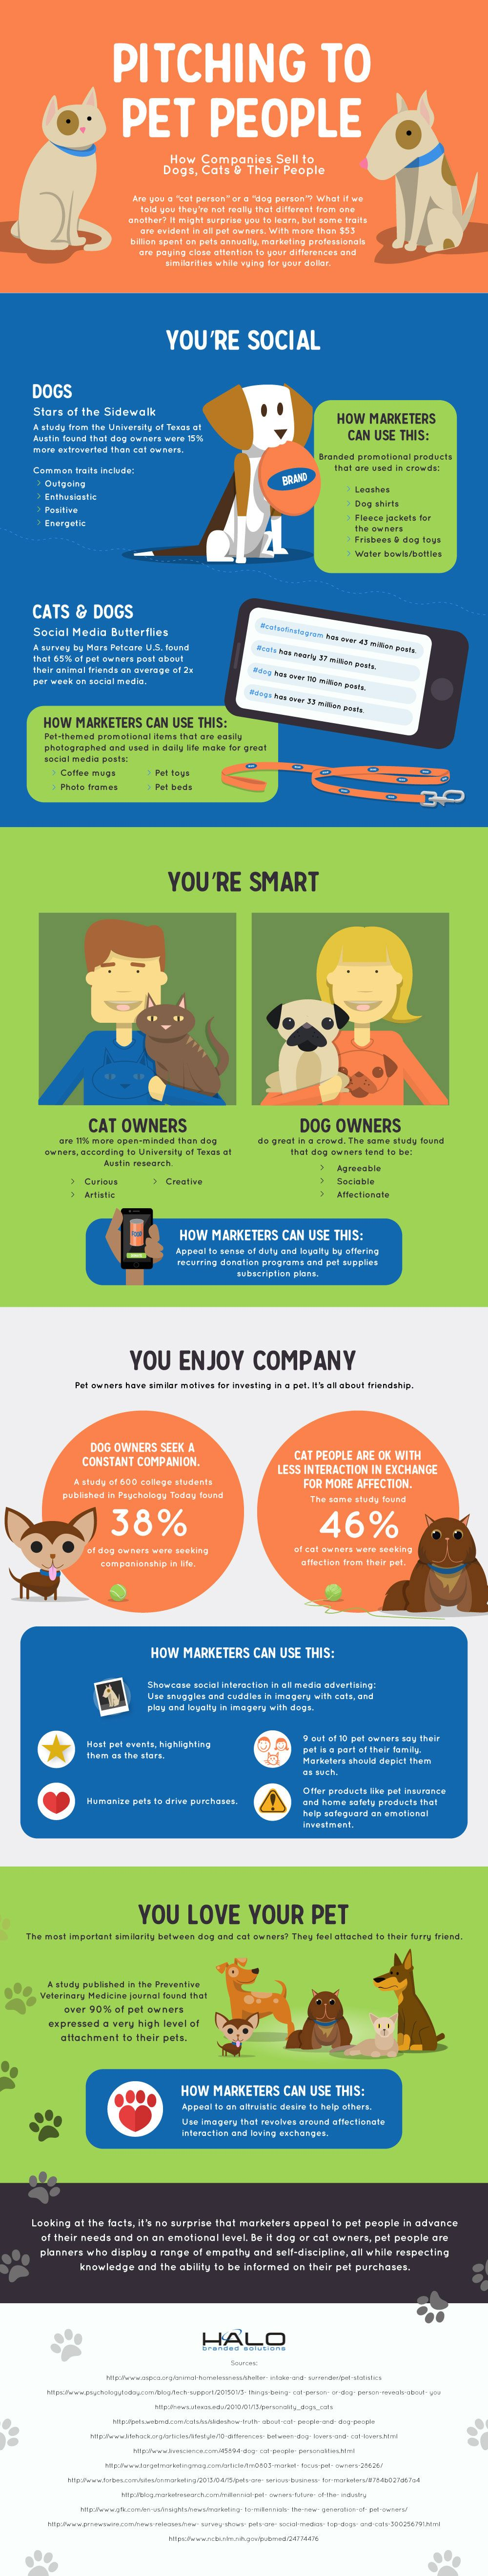 Pitching to Pet People: How Companies Sell to Dogs, Cats & Their People